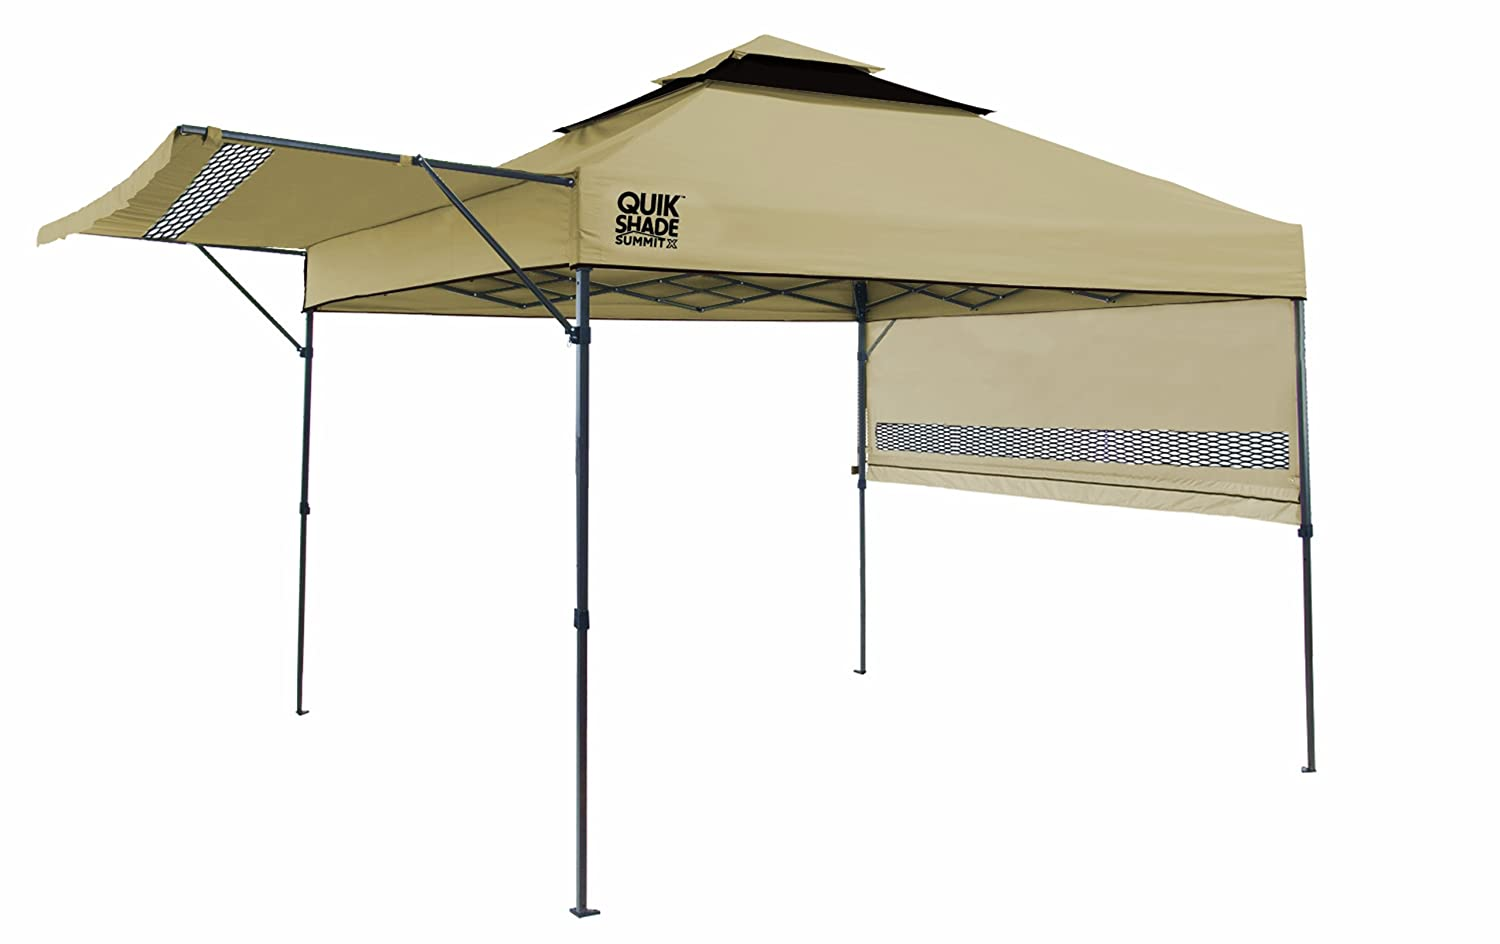 Amazon Quik Shade Summit SX170 10x17 Instant Canopy With Adjustable Dual Half Awnings Sports Outdoors